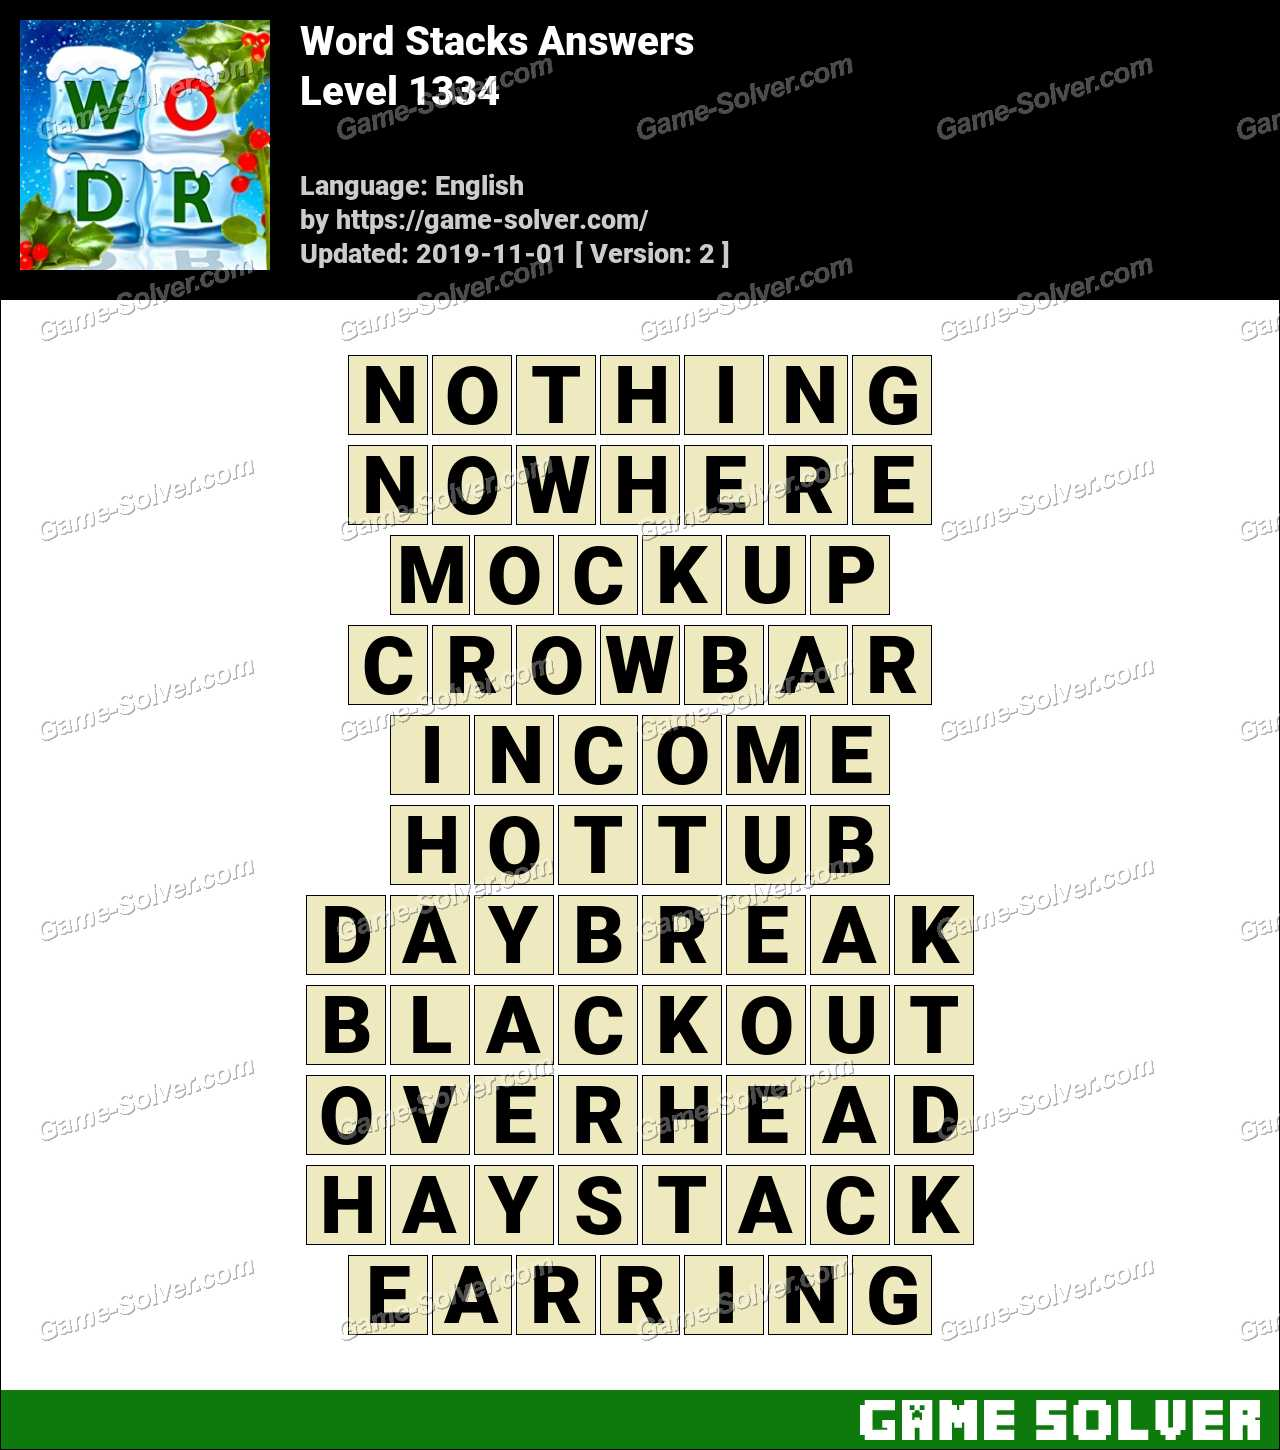 Word Stacks Level 1334 Answers